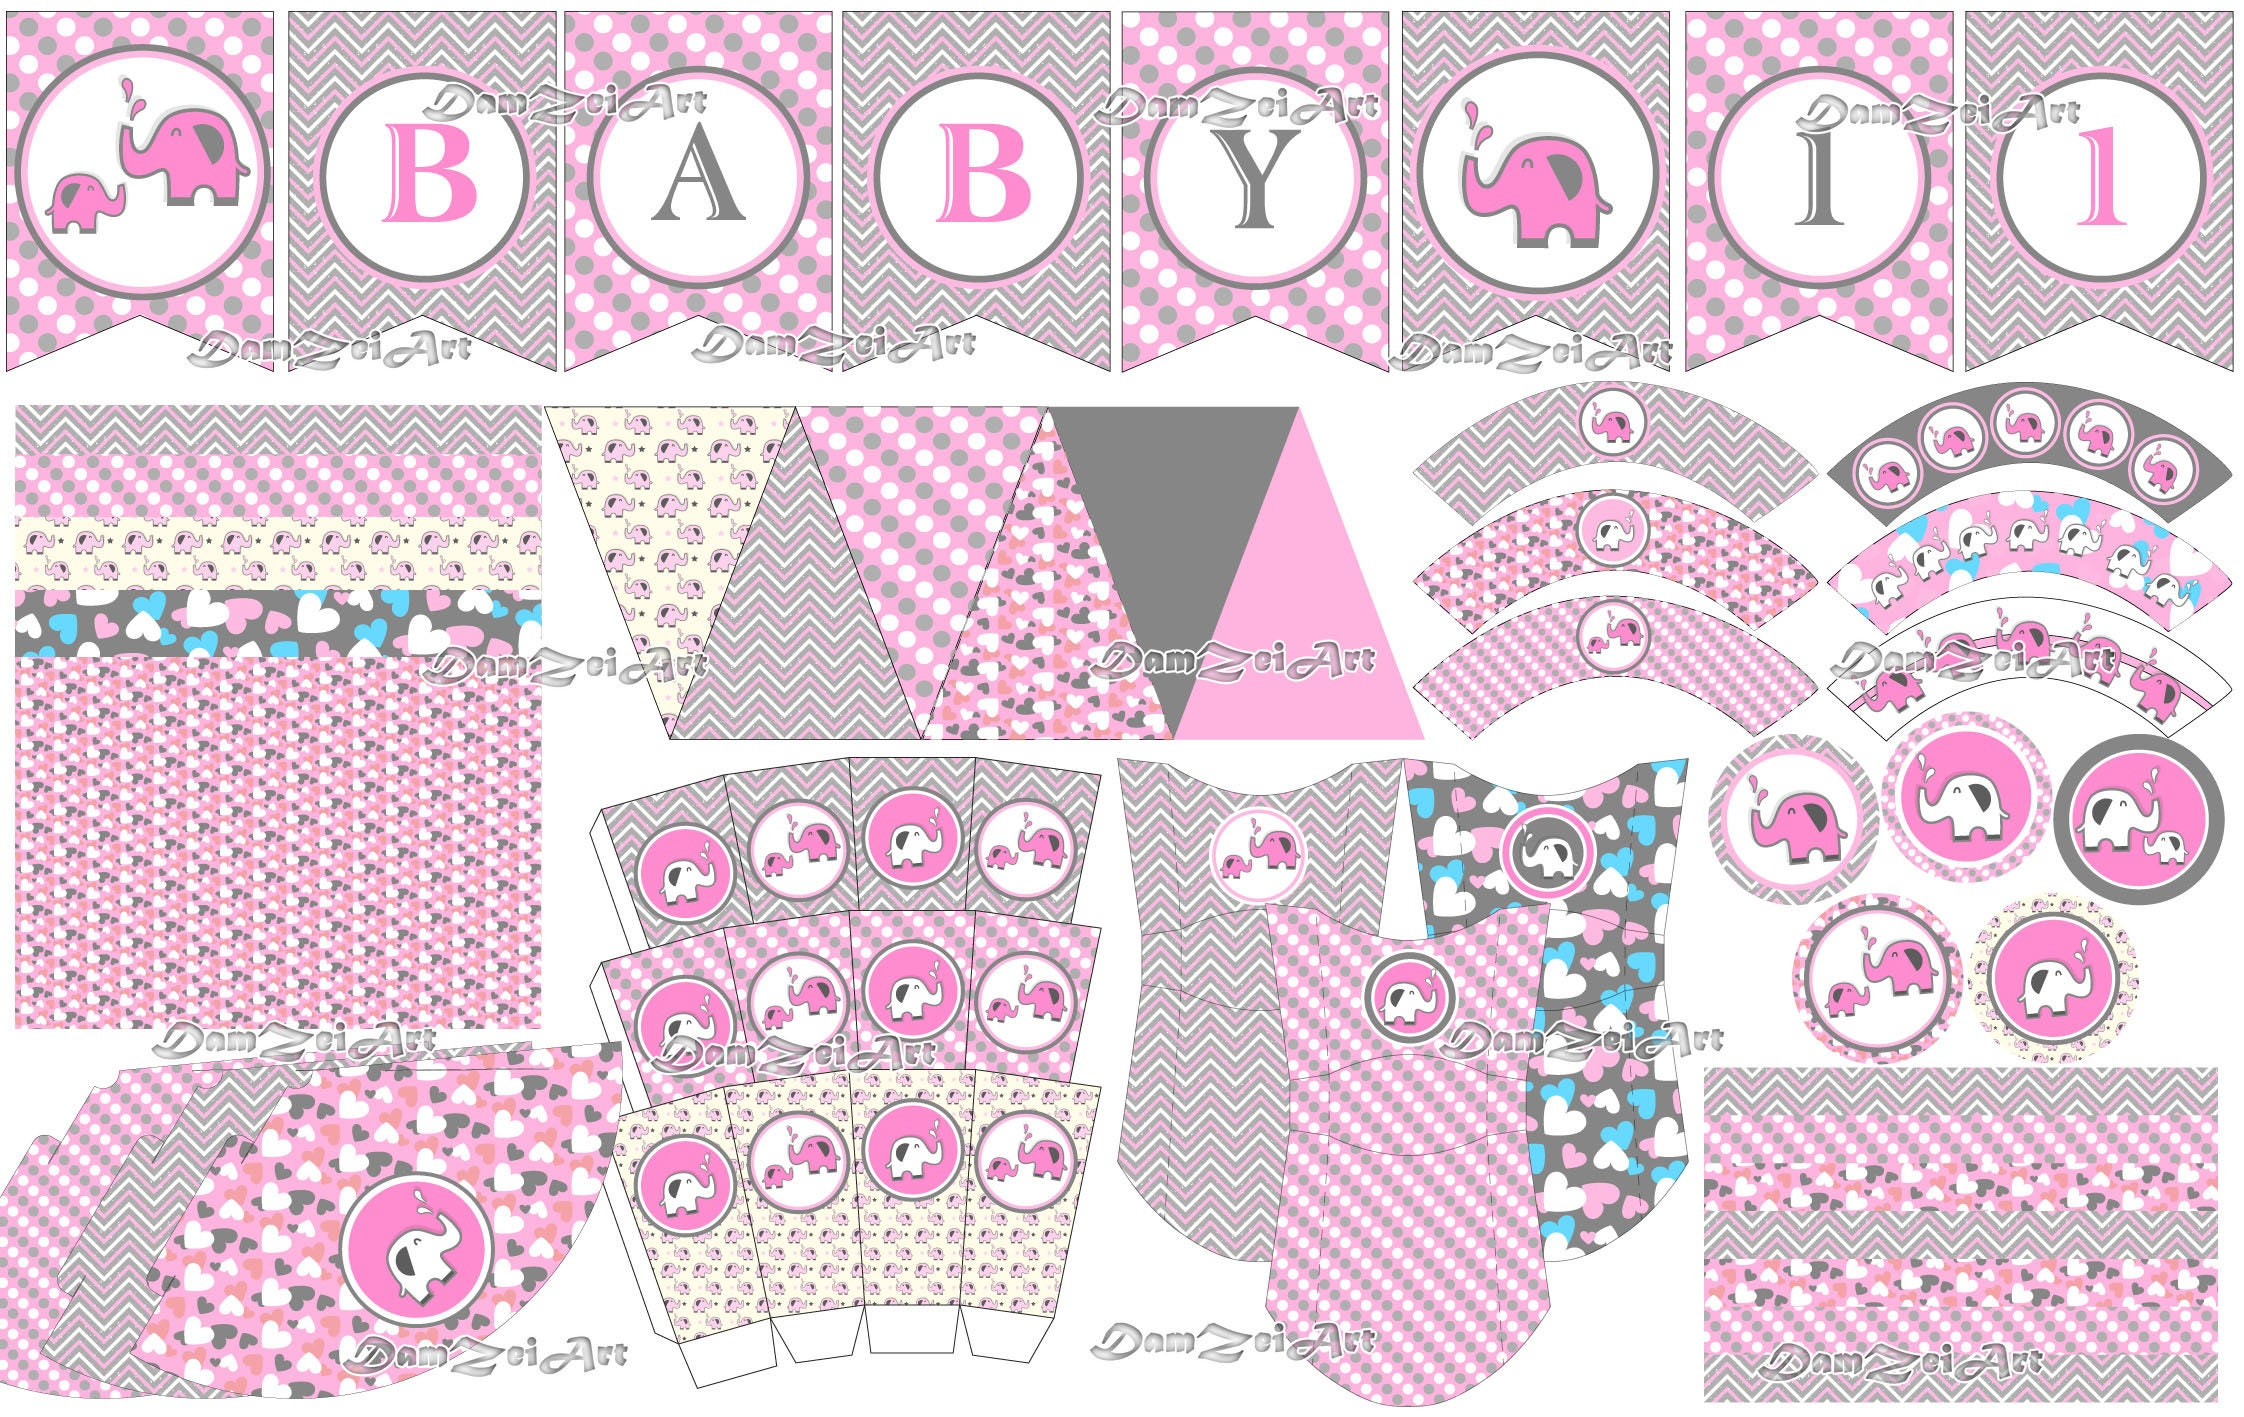 Elephant Baby Shower Decorations Pink And Grey Baby Shower Unisex Elephant  Baby Shower Decorations Pink And